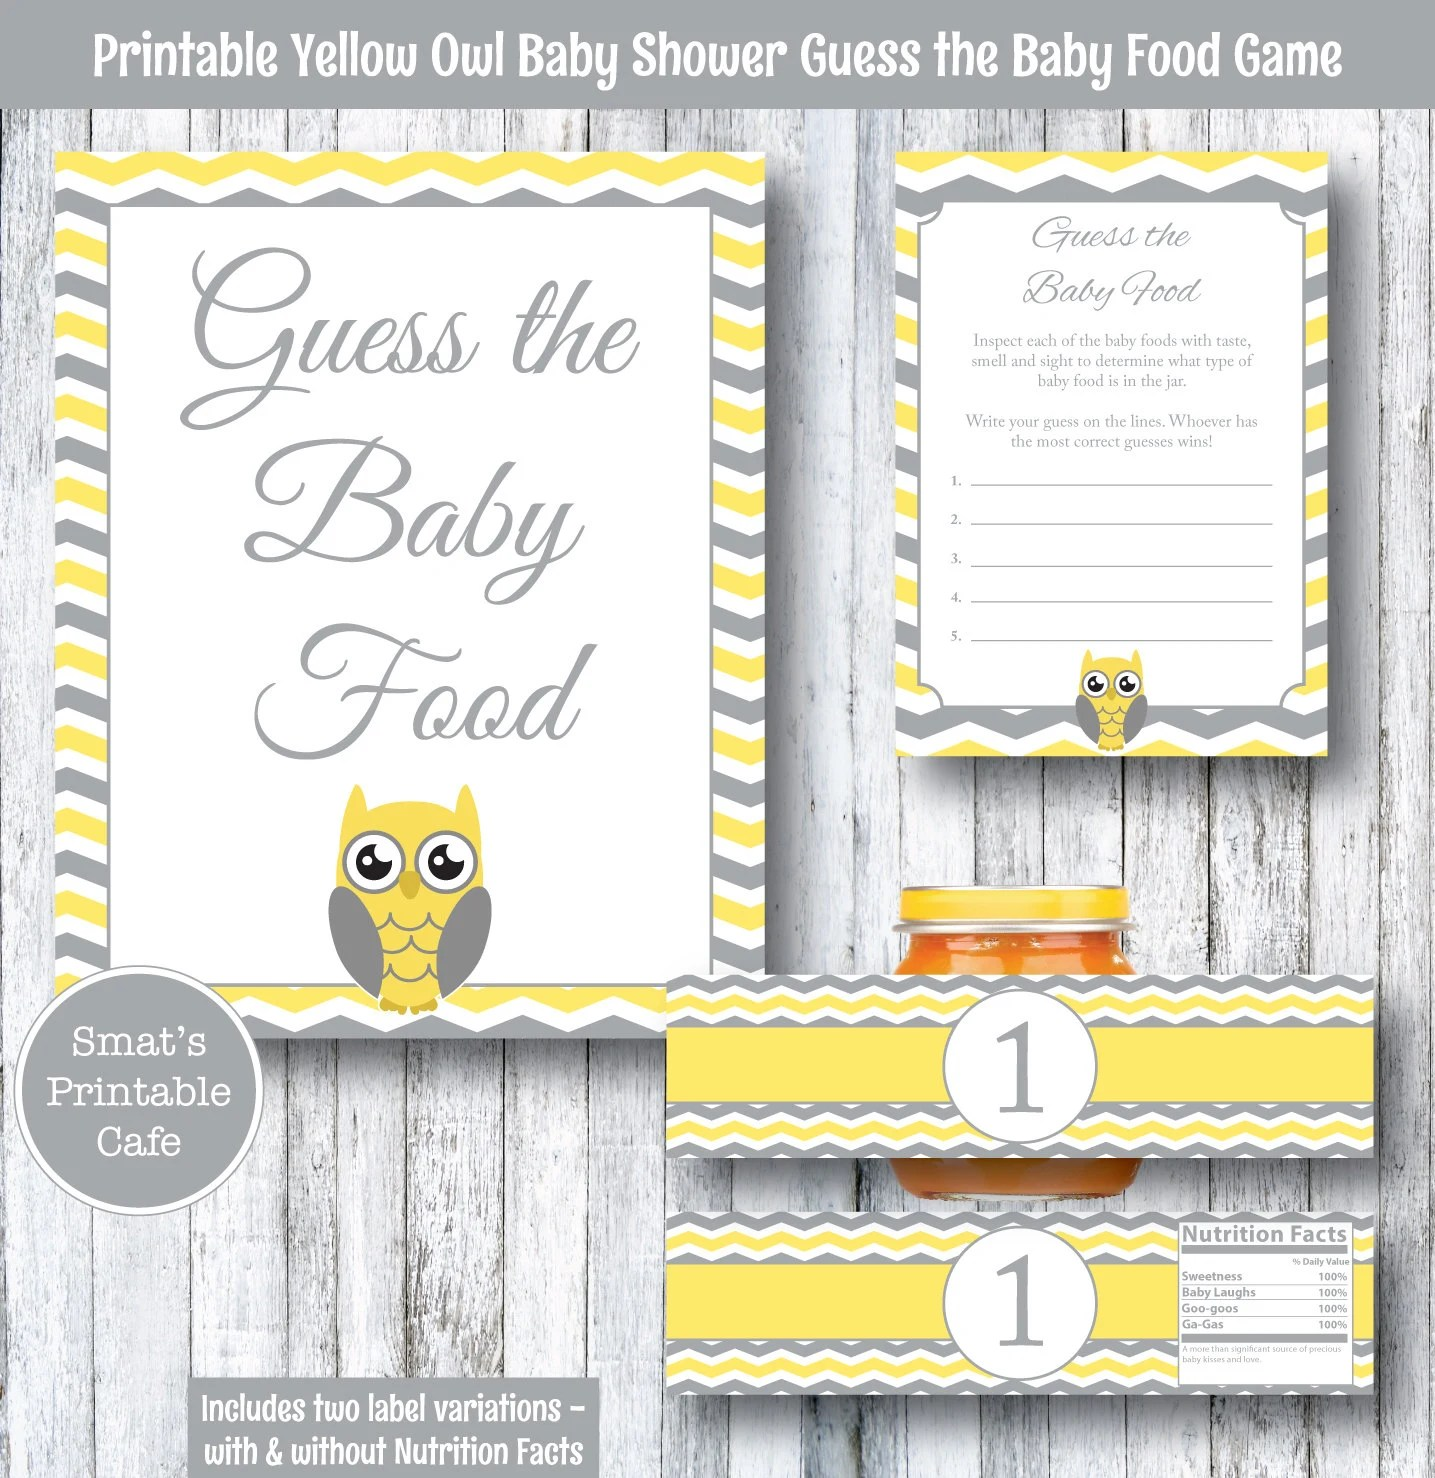 Yellow Owl Baby Shower Guess the Baby Food Game PRINTABLE